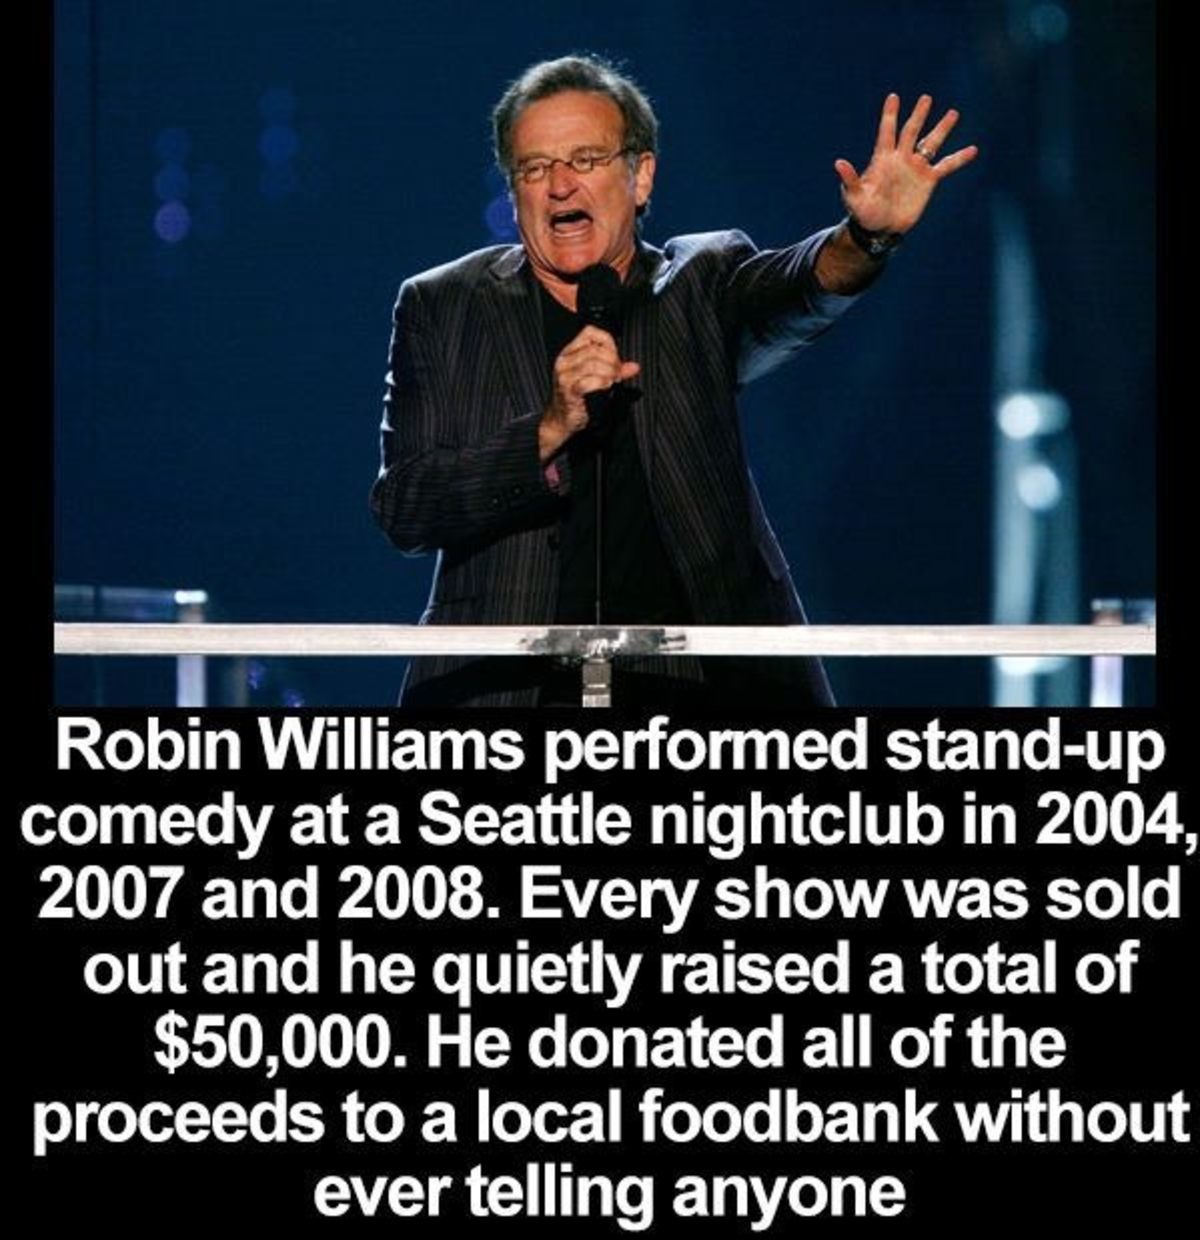 True gentleman was he... Miss him.... . Robin Williams perforated standout comedy at a Seattle nightclub in 2004, 2007 and 2008. Every show was sold out and he